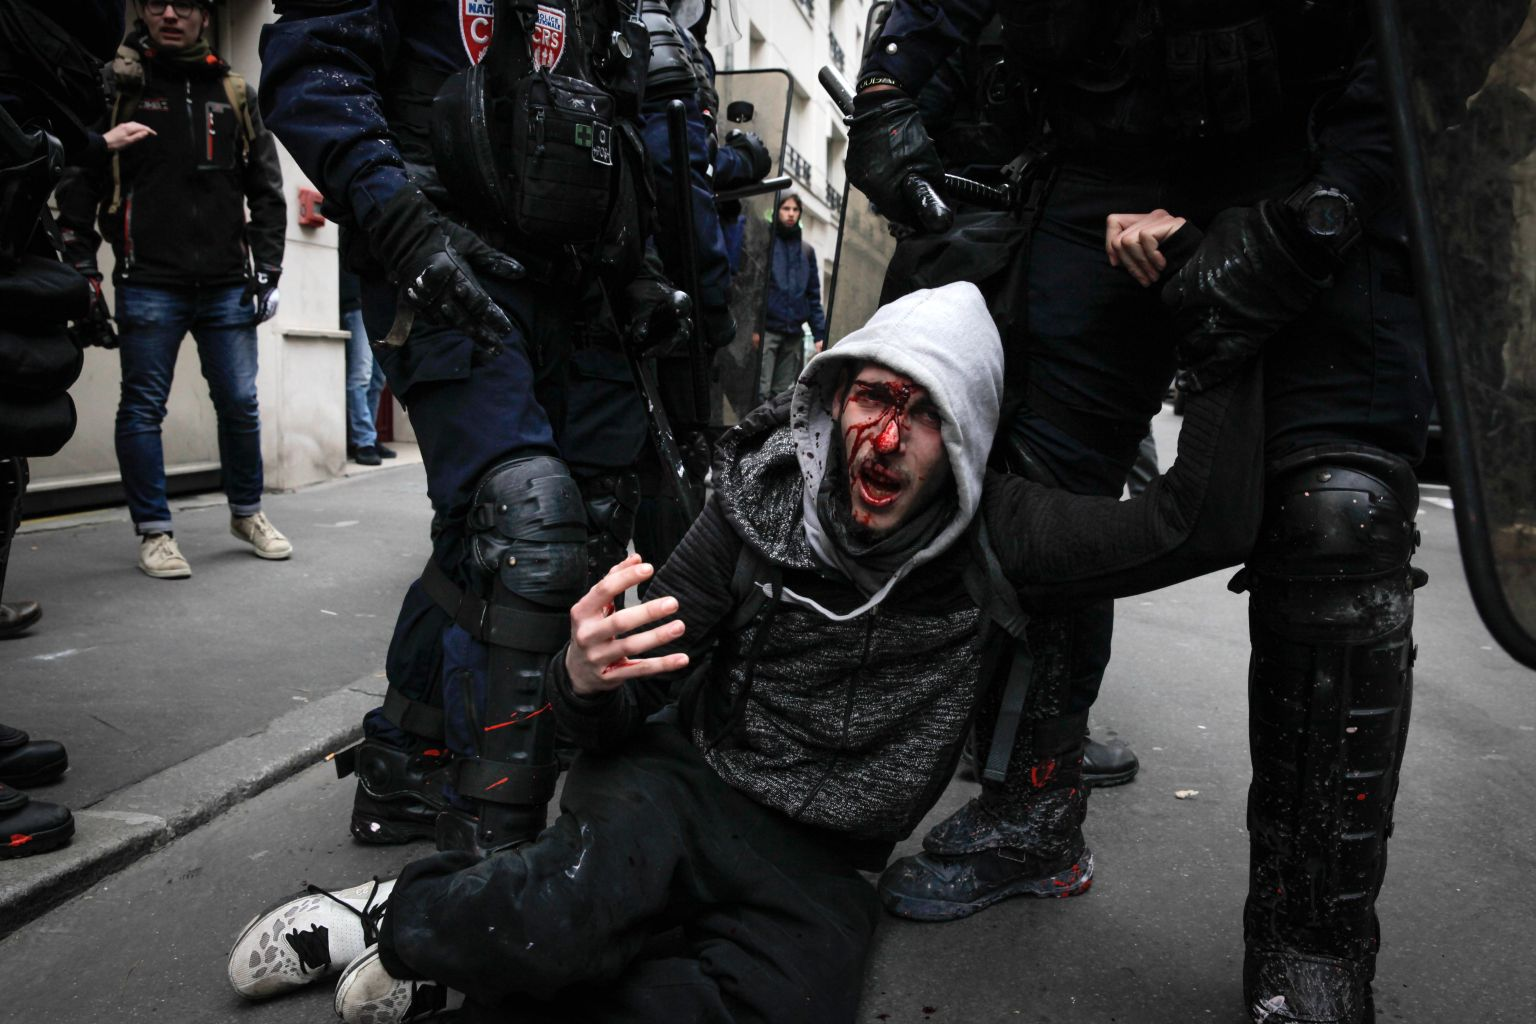 TOPSHOT - Policemen arrest an injured man on the sidelines of a protest against French government's string of reforms, on March 22, 2018 in Paris. Seven trade unions have called on public sector workers to strike on March 22, including school and hospital staff, civil servants and air traffic controllers. More than 140 protests are planned across France, the biggest culminating at the Bastille monument in Paris where unions expect 25,000 demonstrators.  / AFP PHOTO / -        (Photo credit should read -/AFP/Getty Images)